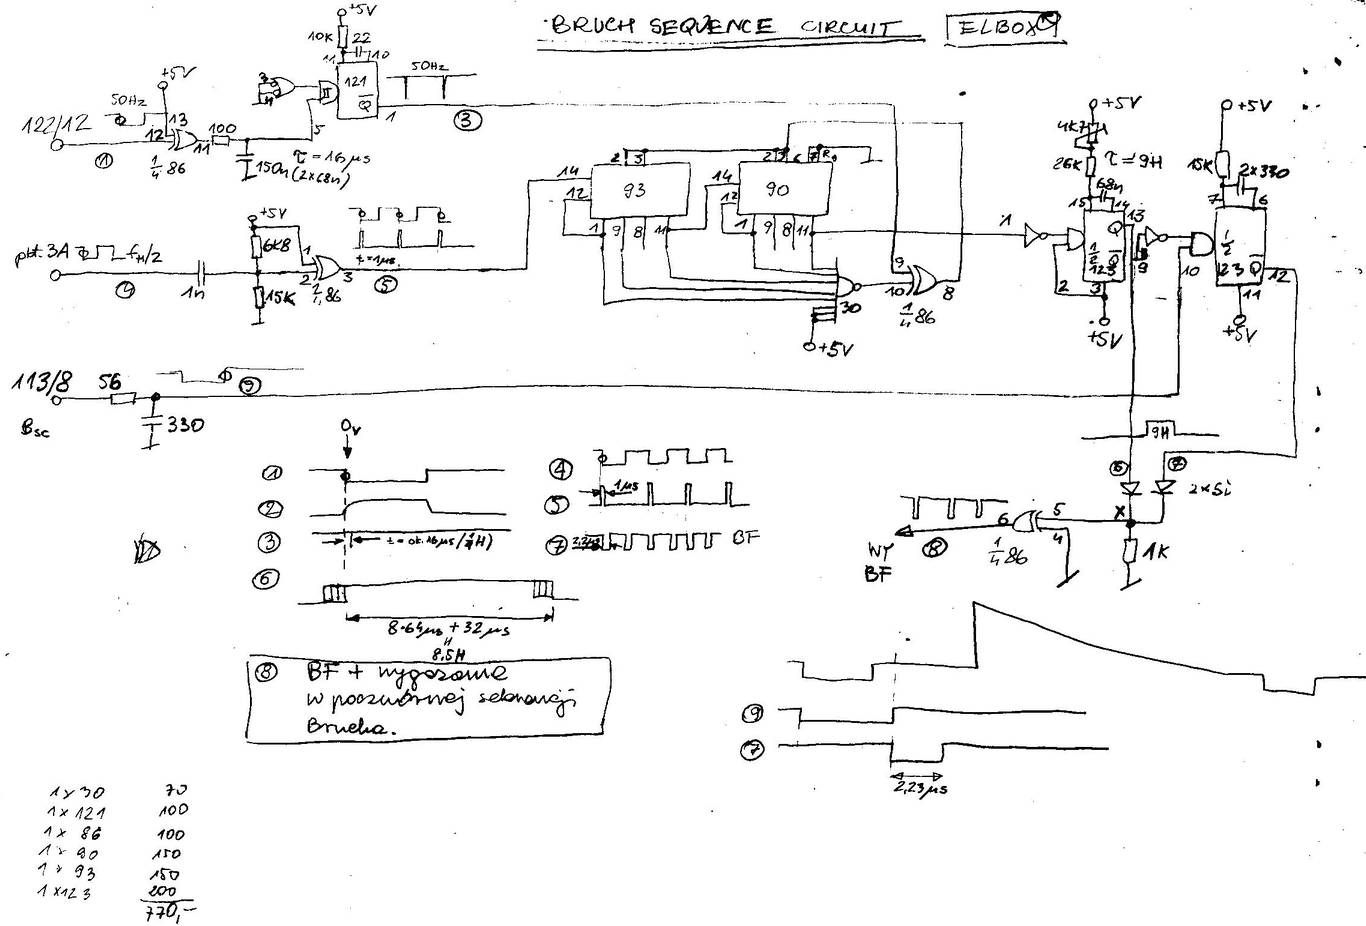 Wlan Antenna Rfid Pager Secam Pal Coder Milestones Elboxrf Function Generator Circuit Diagram Pictures Of A Bruch Sequence 1984